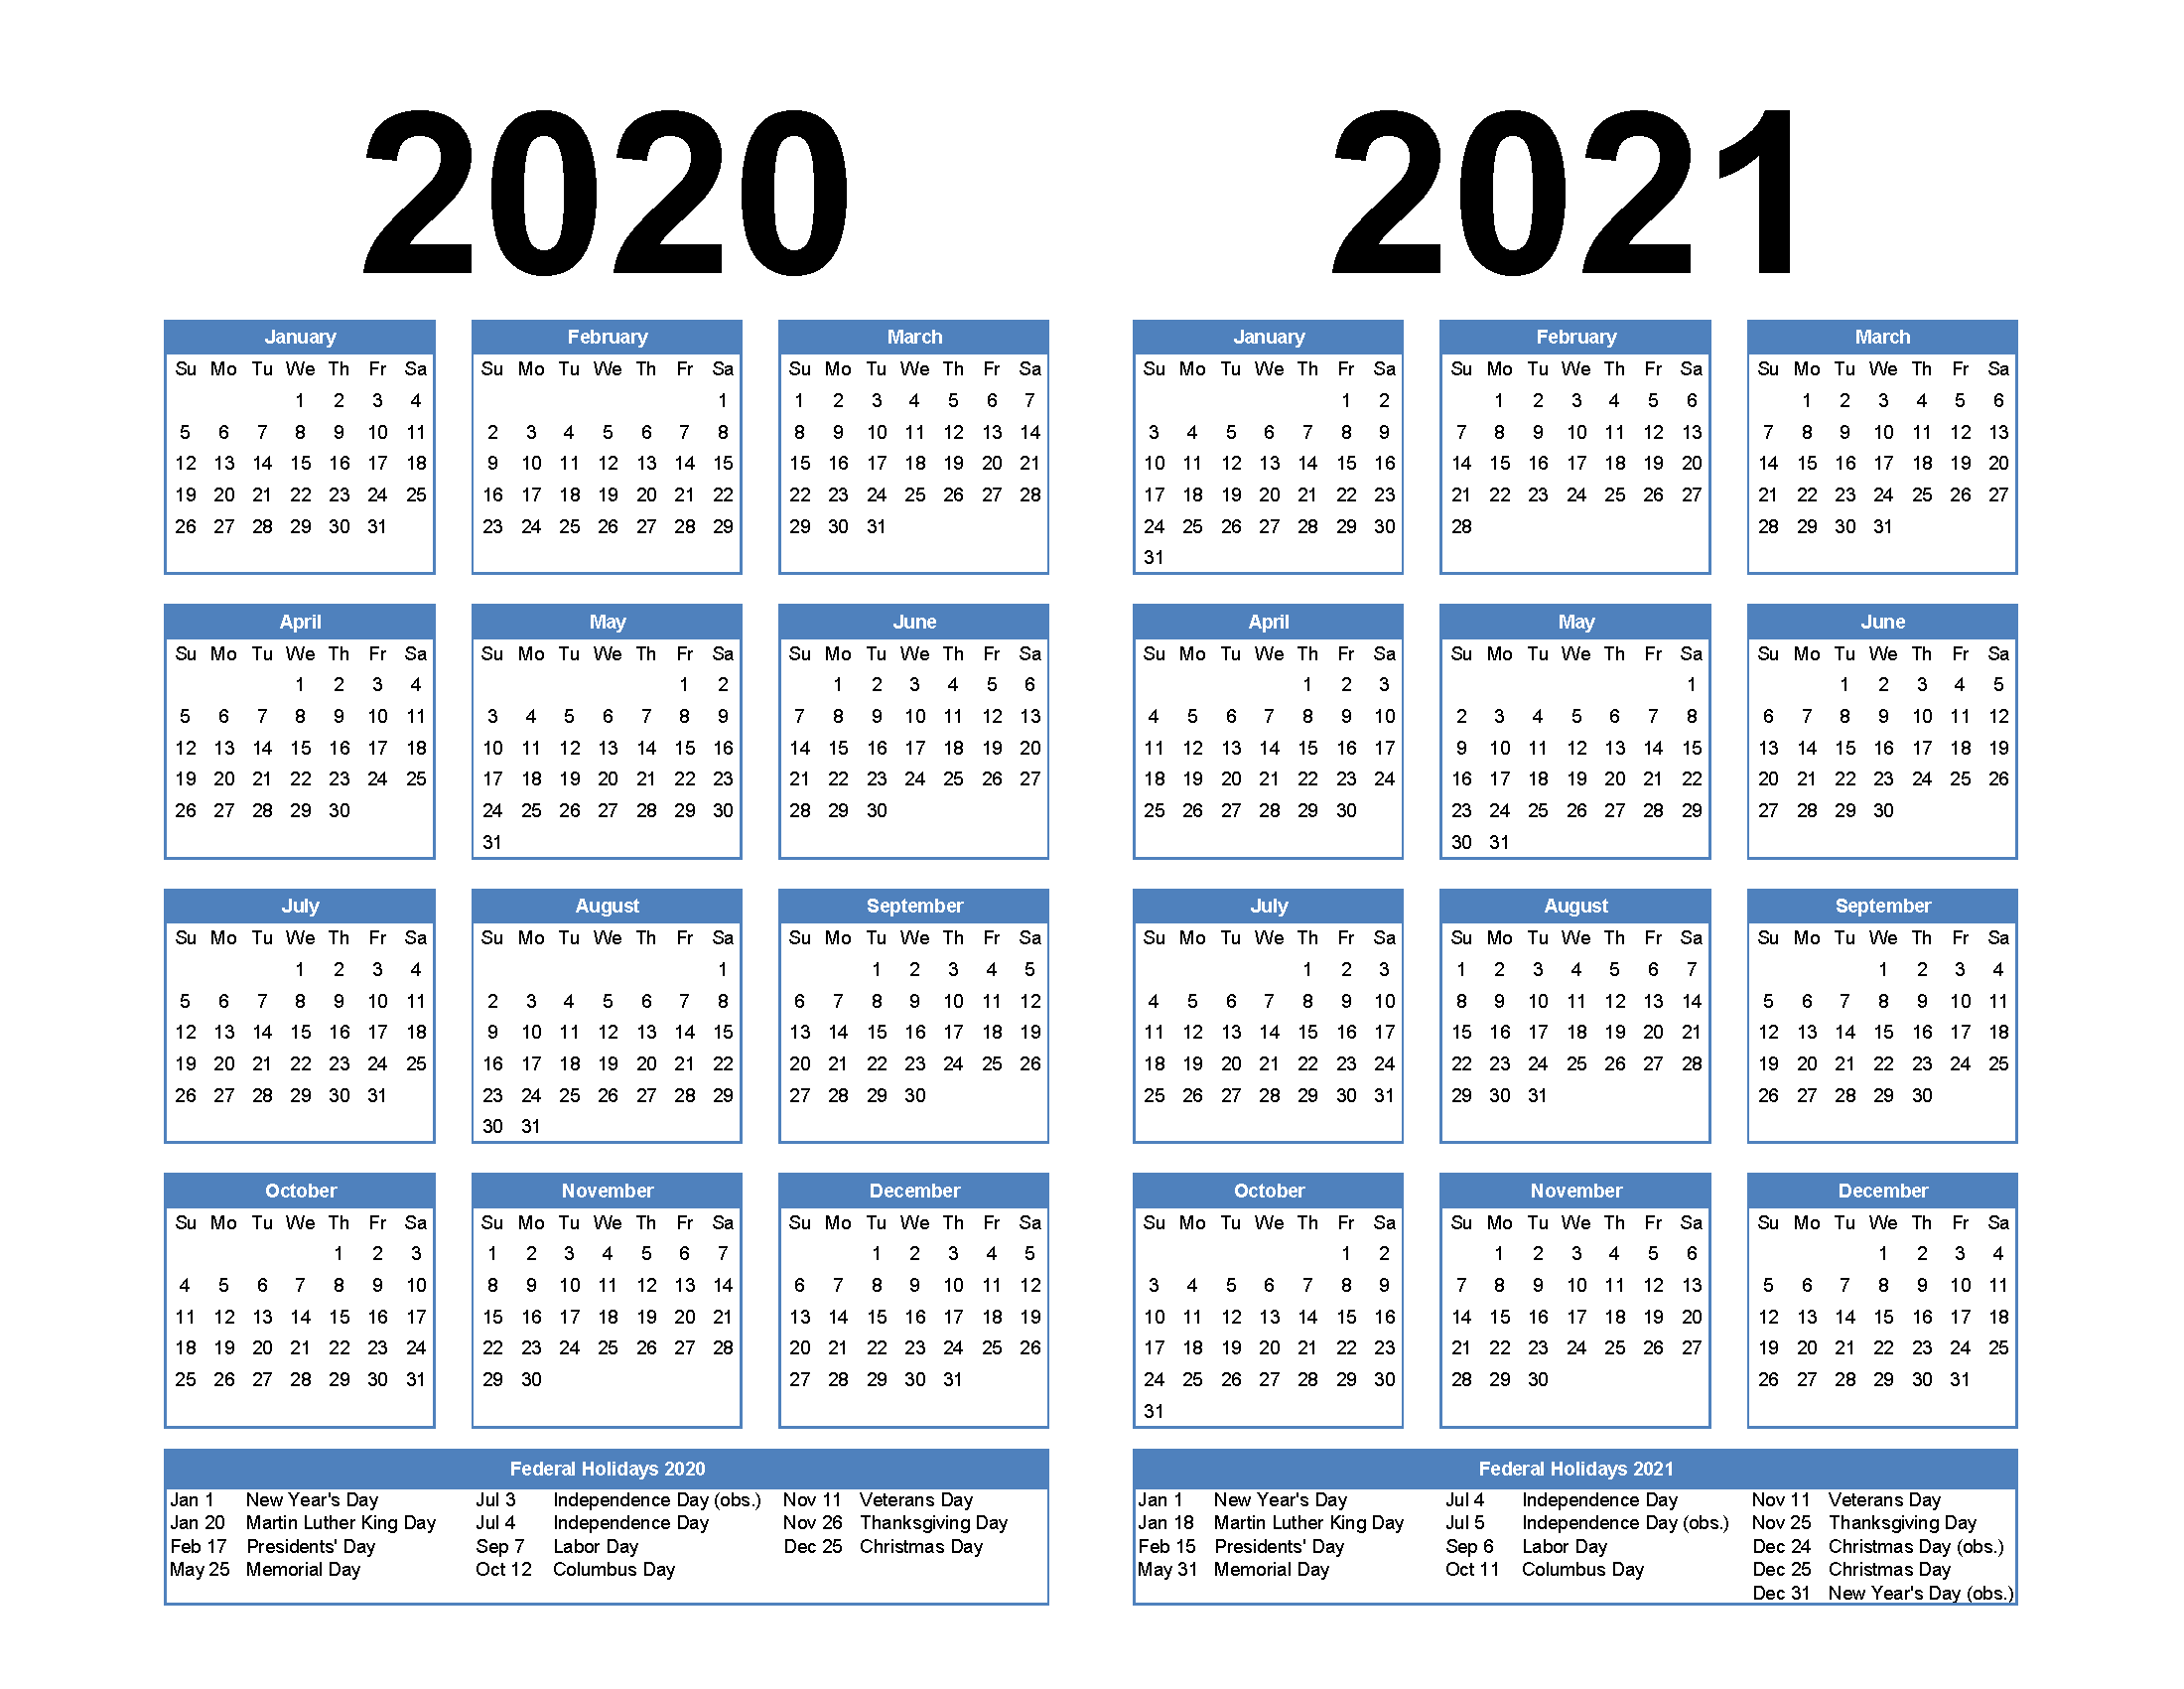 Free Printable 2020 and 2021 Calendar with Holidays PDF, Word